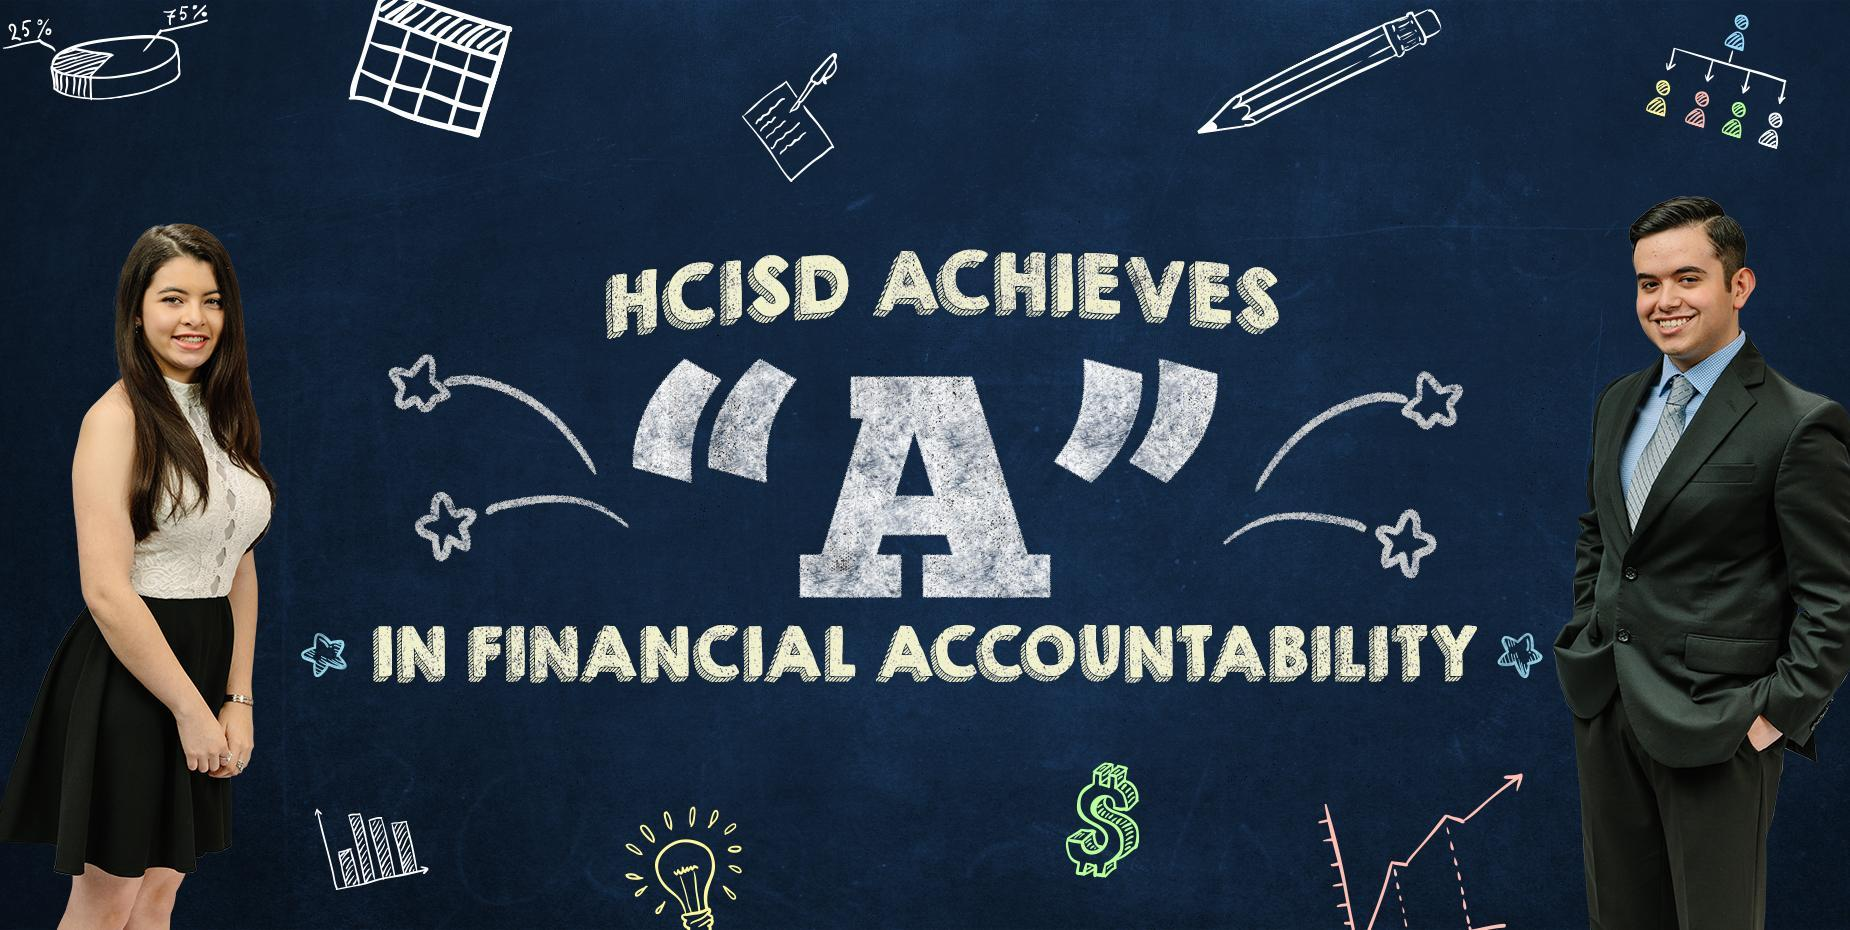 Photo of two students standing near words that say HCISD Achieves